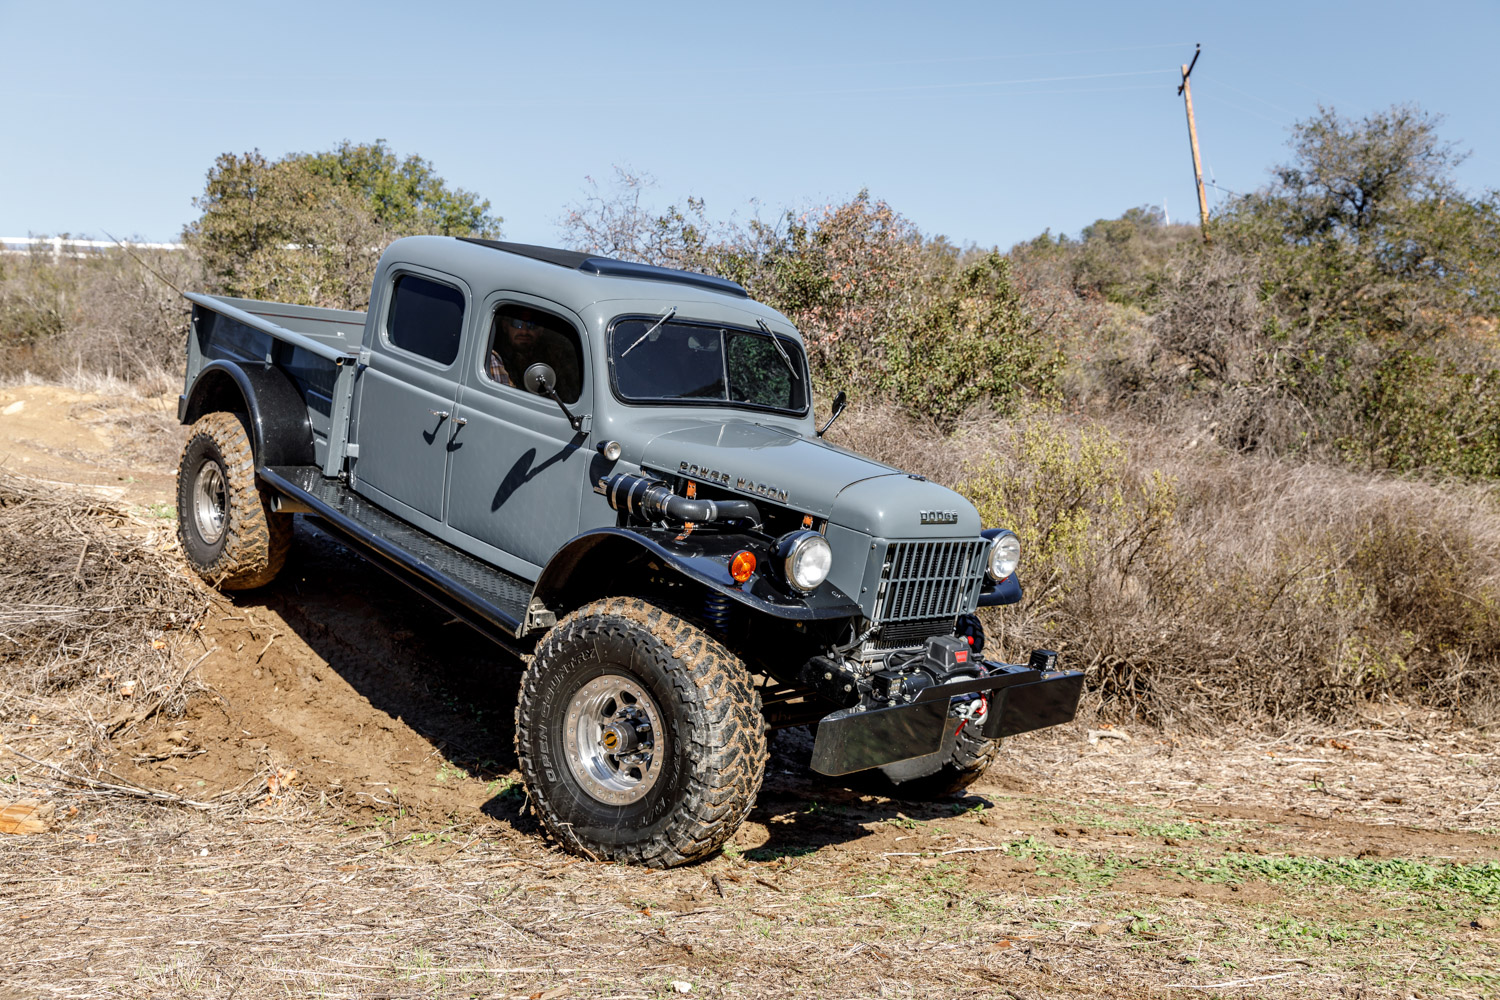 1949 Dodge Power Wagon off road down hill